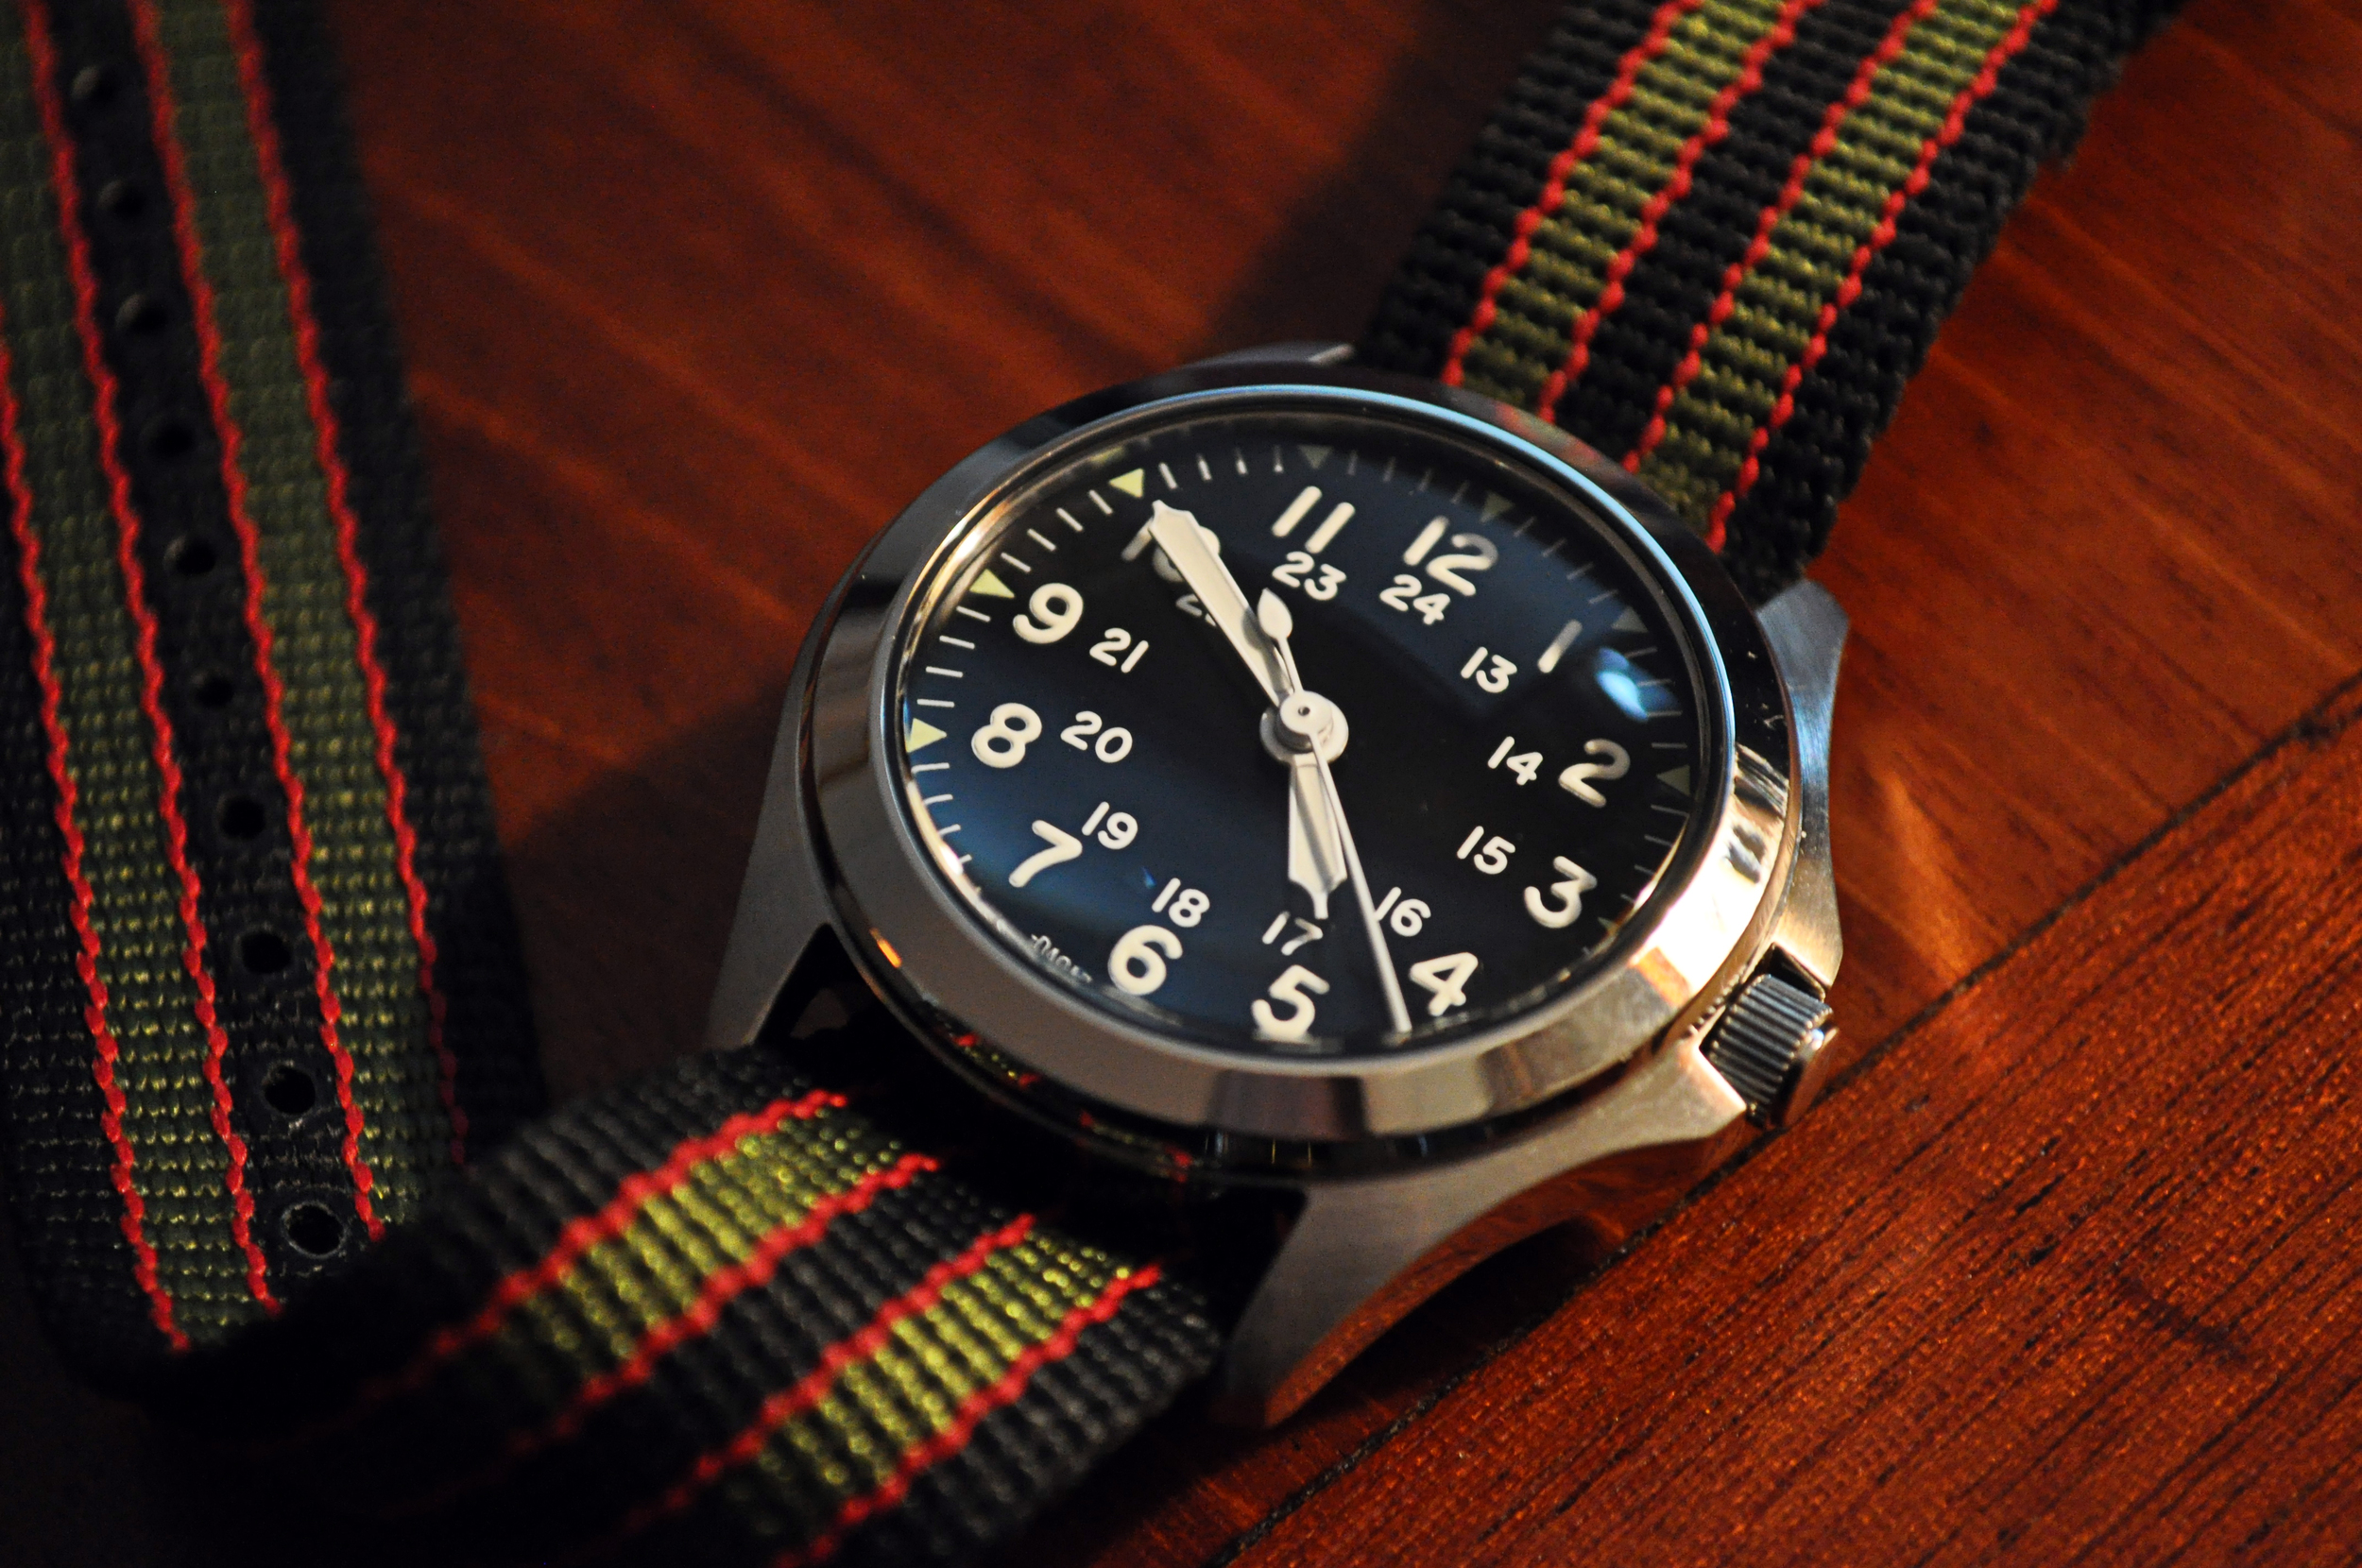 The Traveling Watch